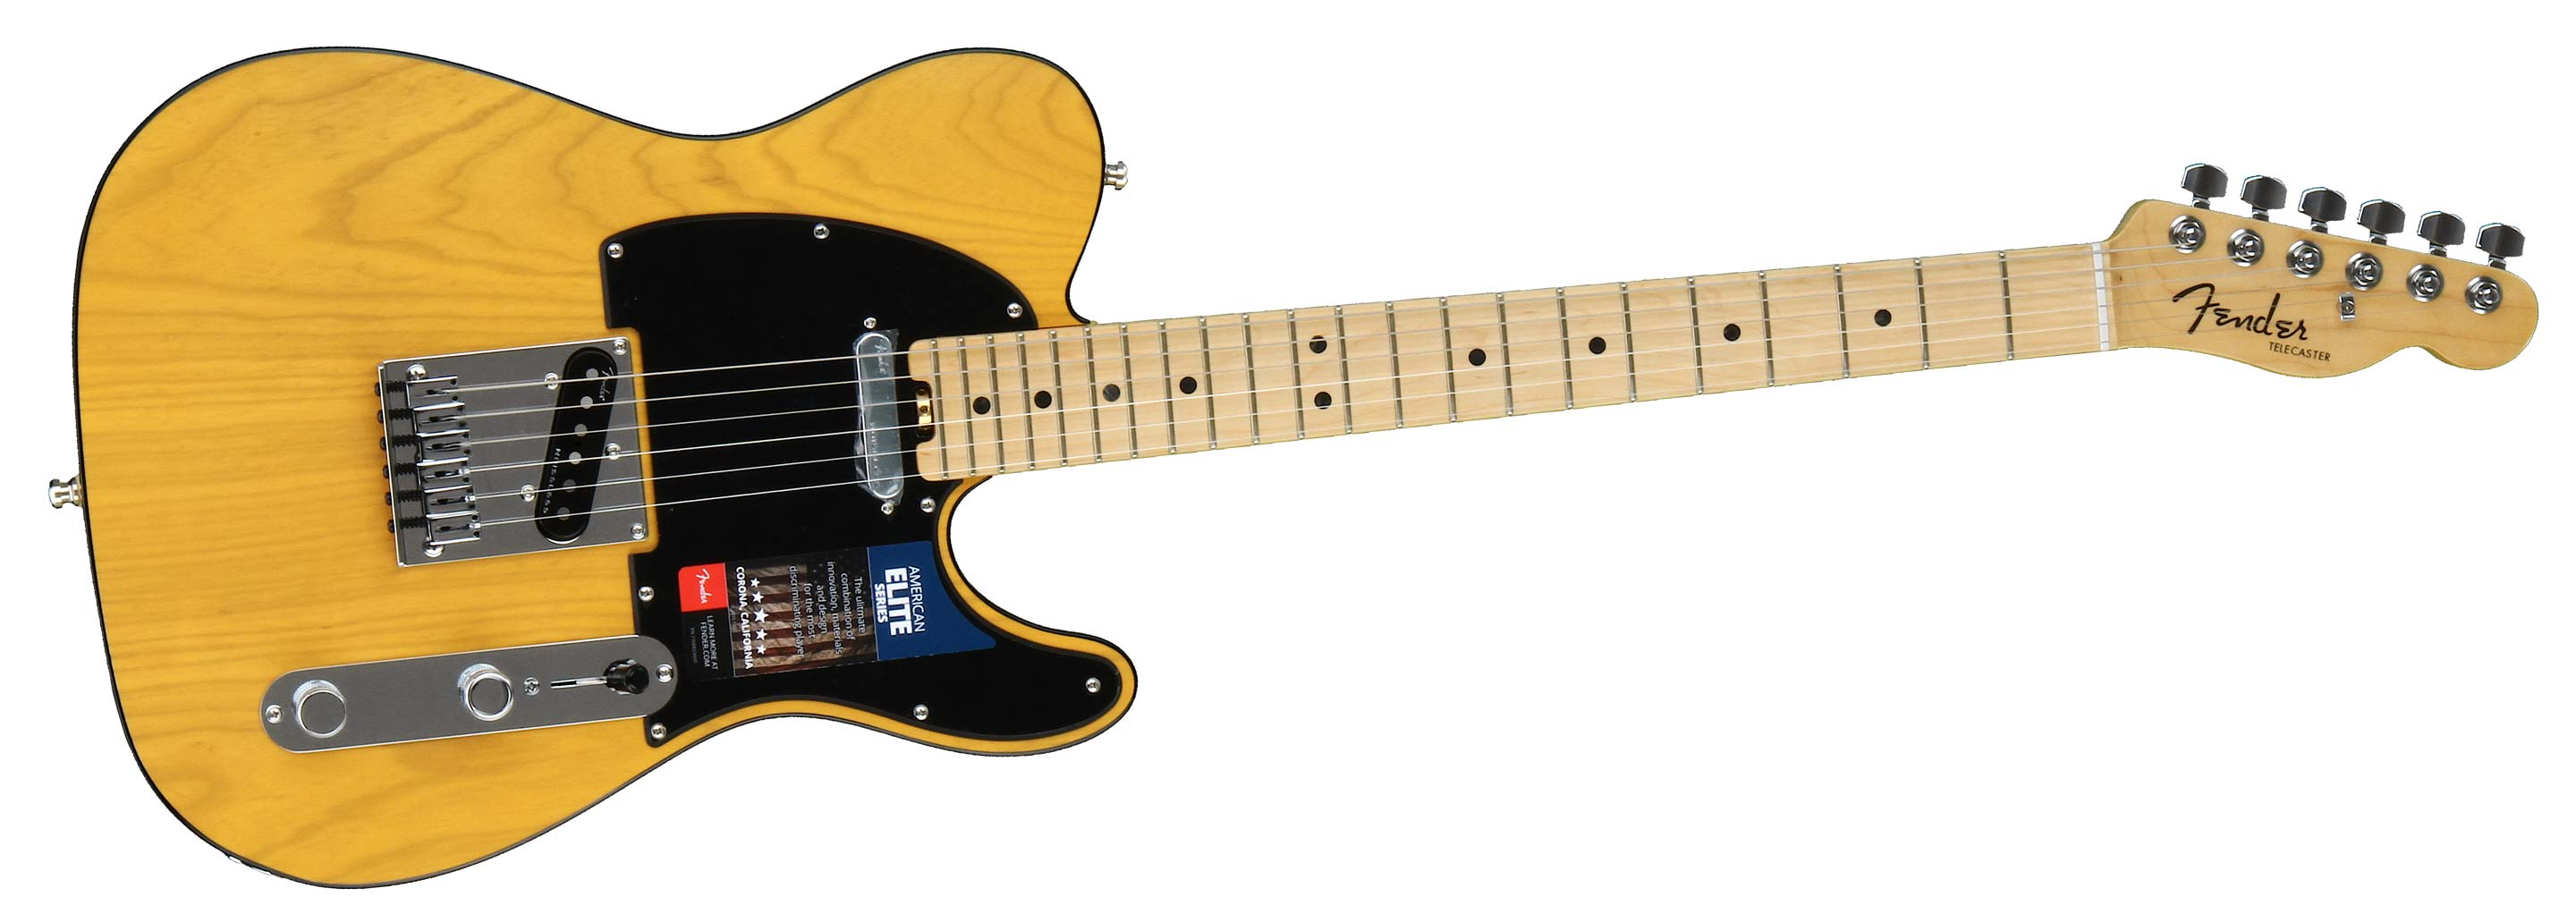 tele_full about fender telecaster guitars sweetwater  at gsmportal.co